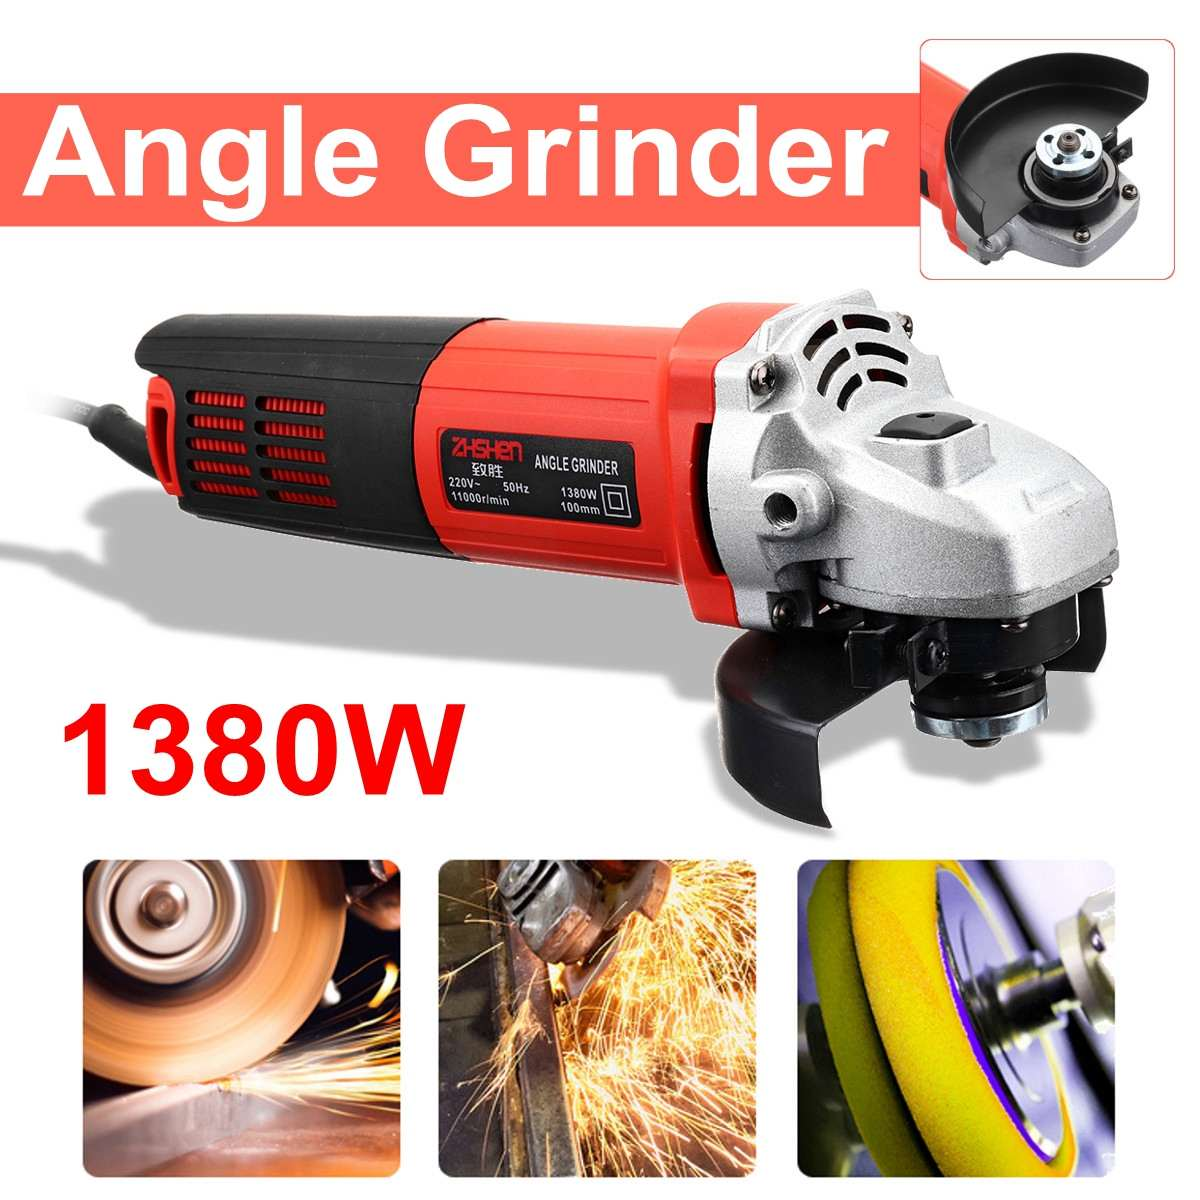 220V/50Hz 1380W 11000r/min Angle Grinder Electric Angle Grinding Metal Wood Cutting and grinding Machine Power Too